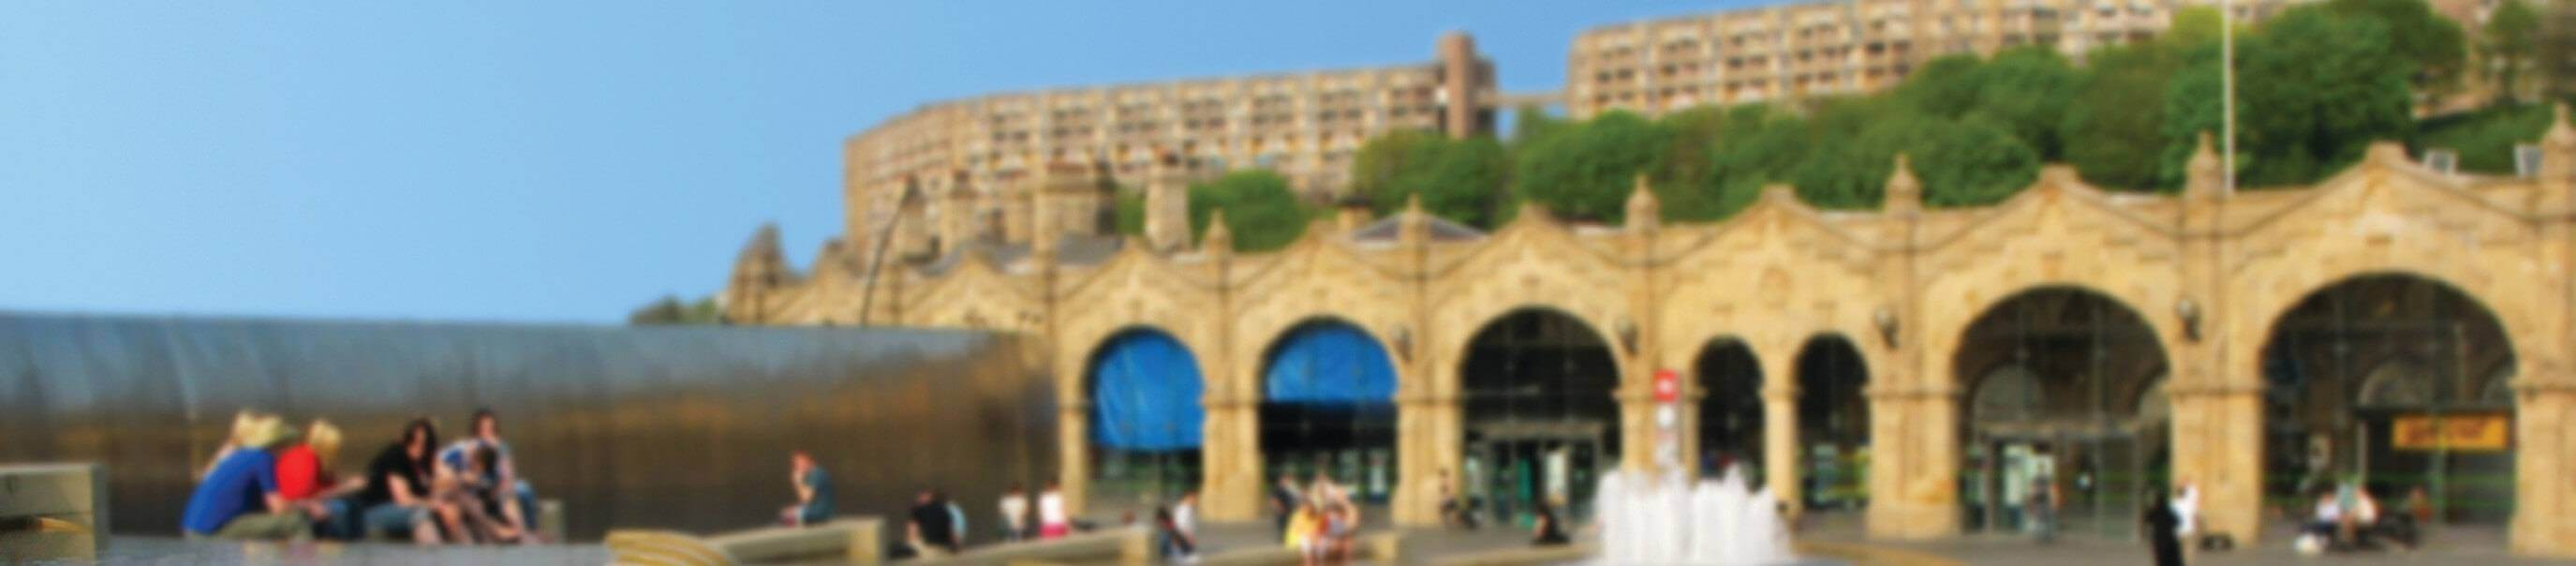 sheffield-letting-agents-sheffield-train-station-bannerjpg